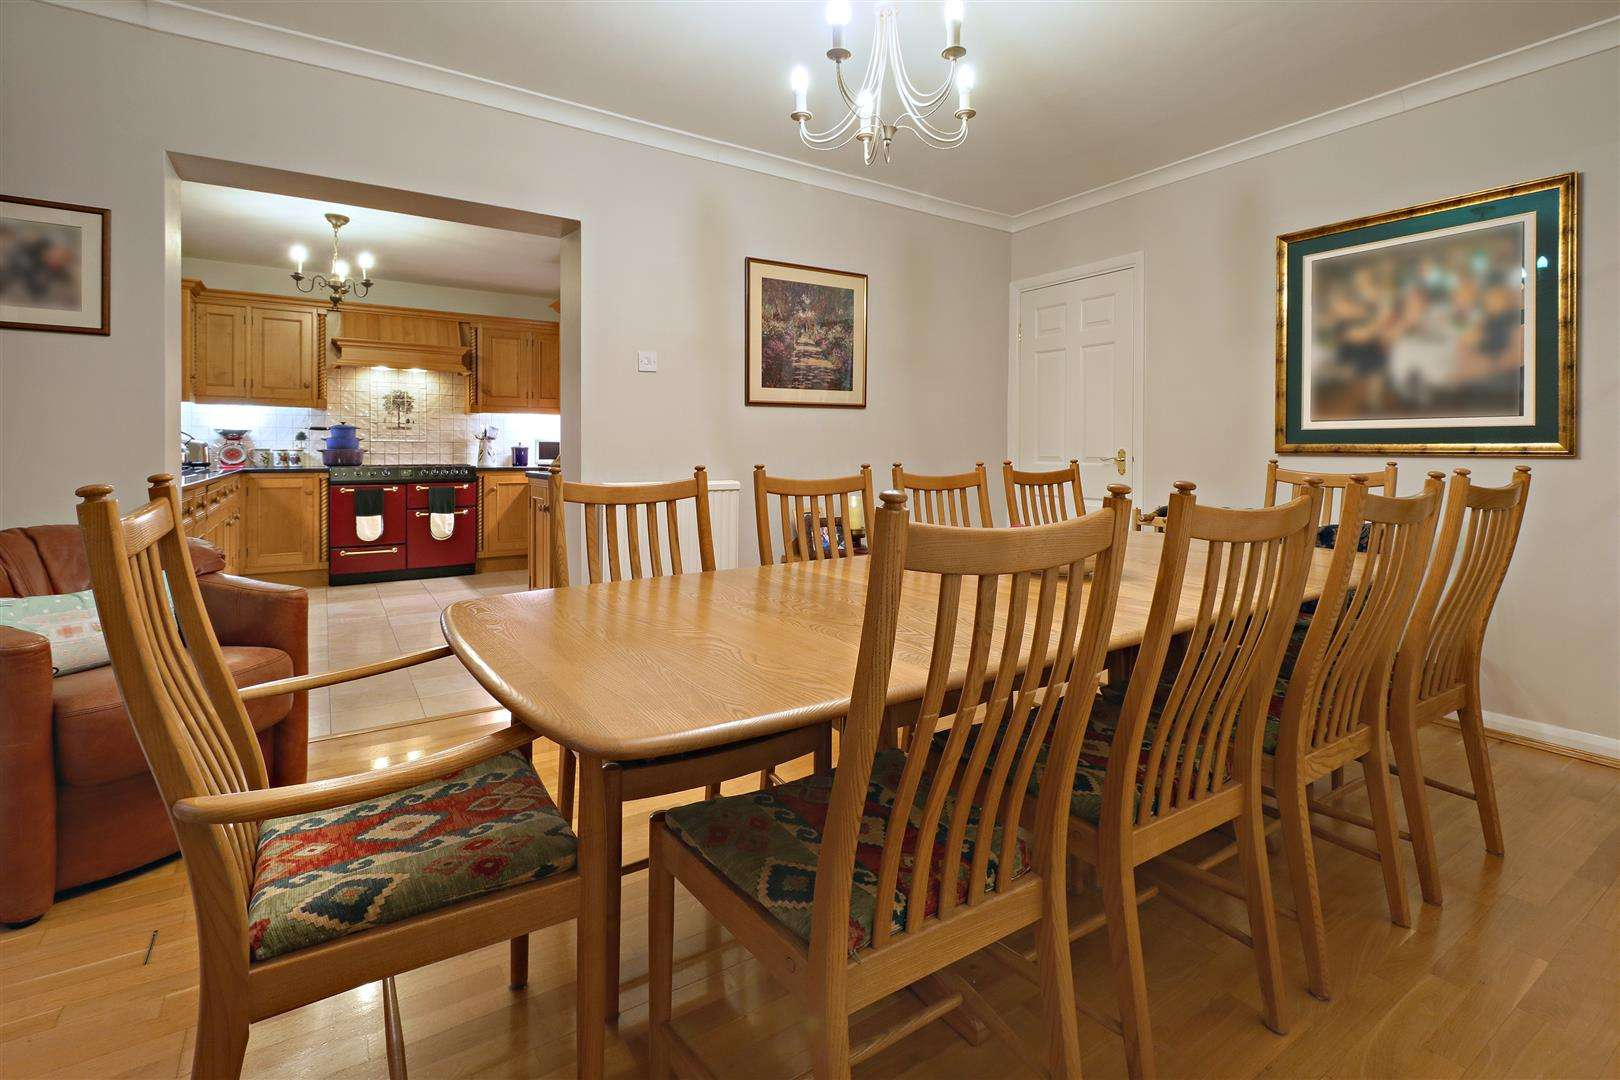 5 bed for sale - (Property Image 3)